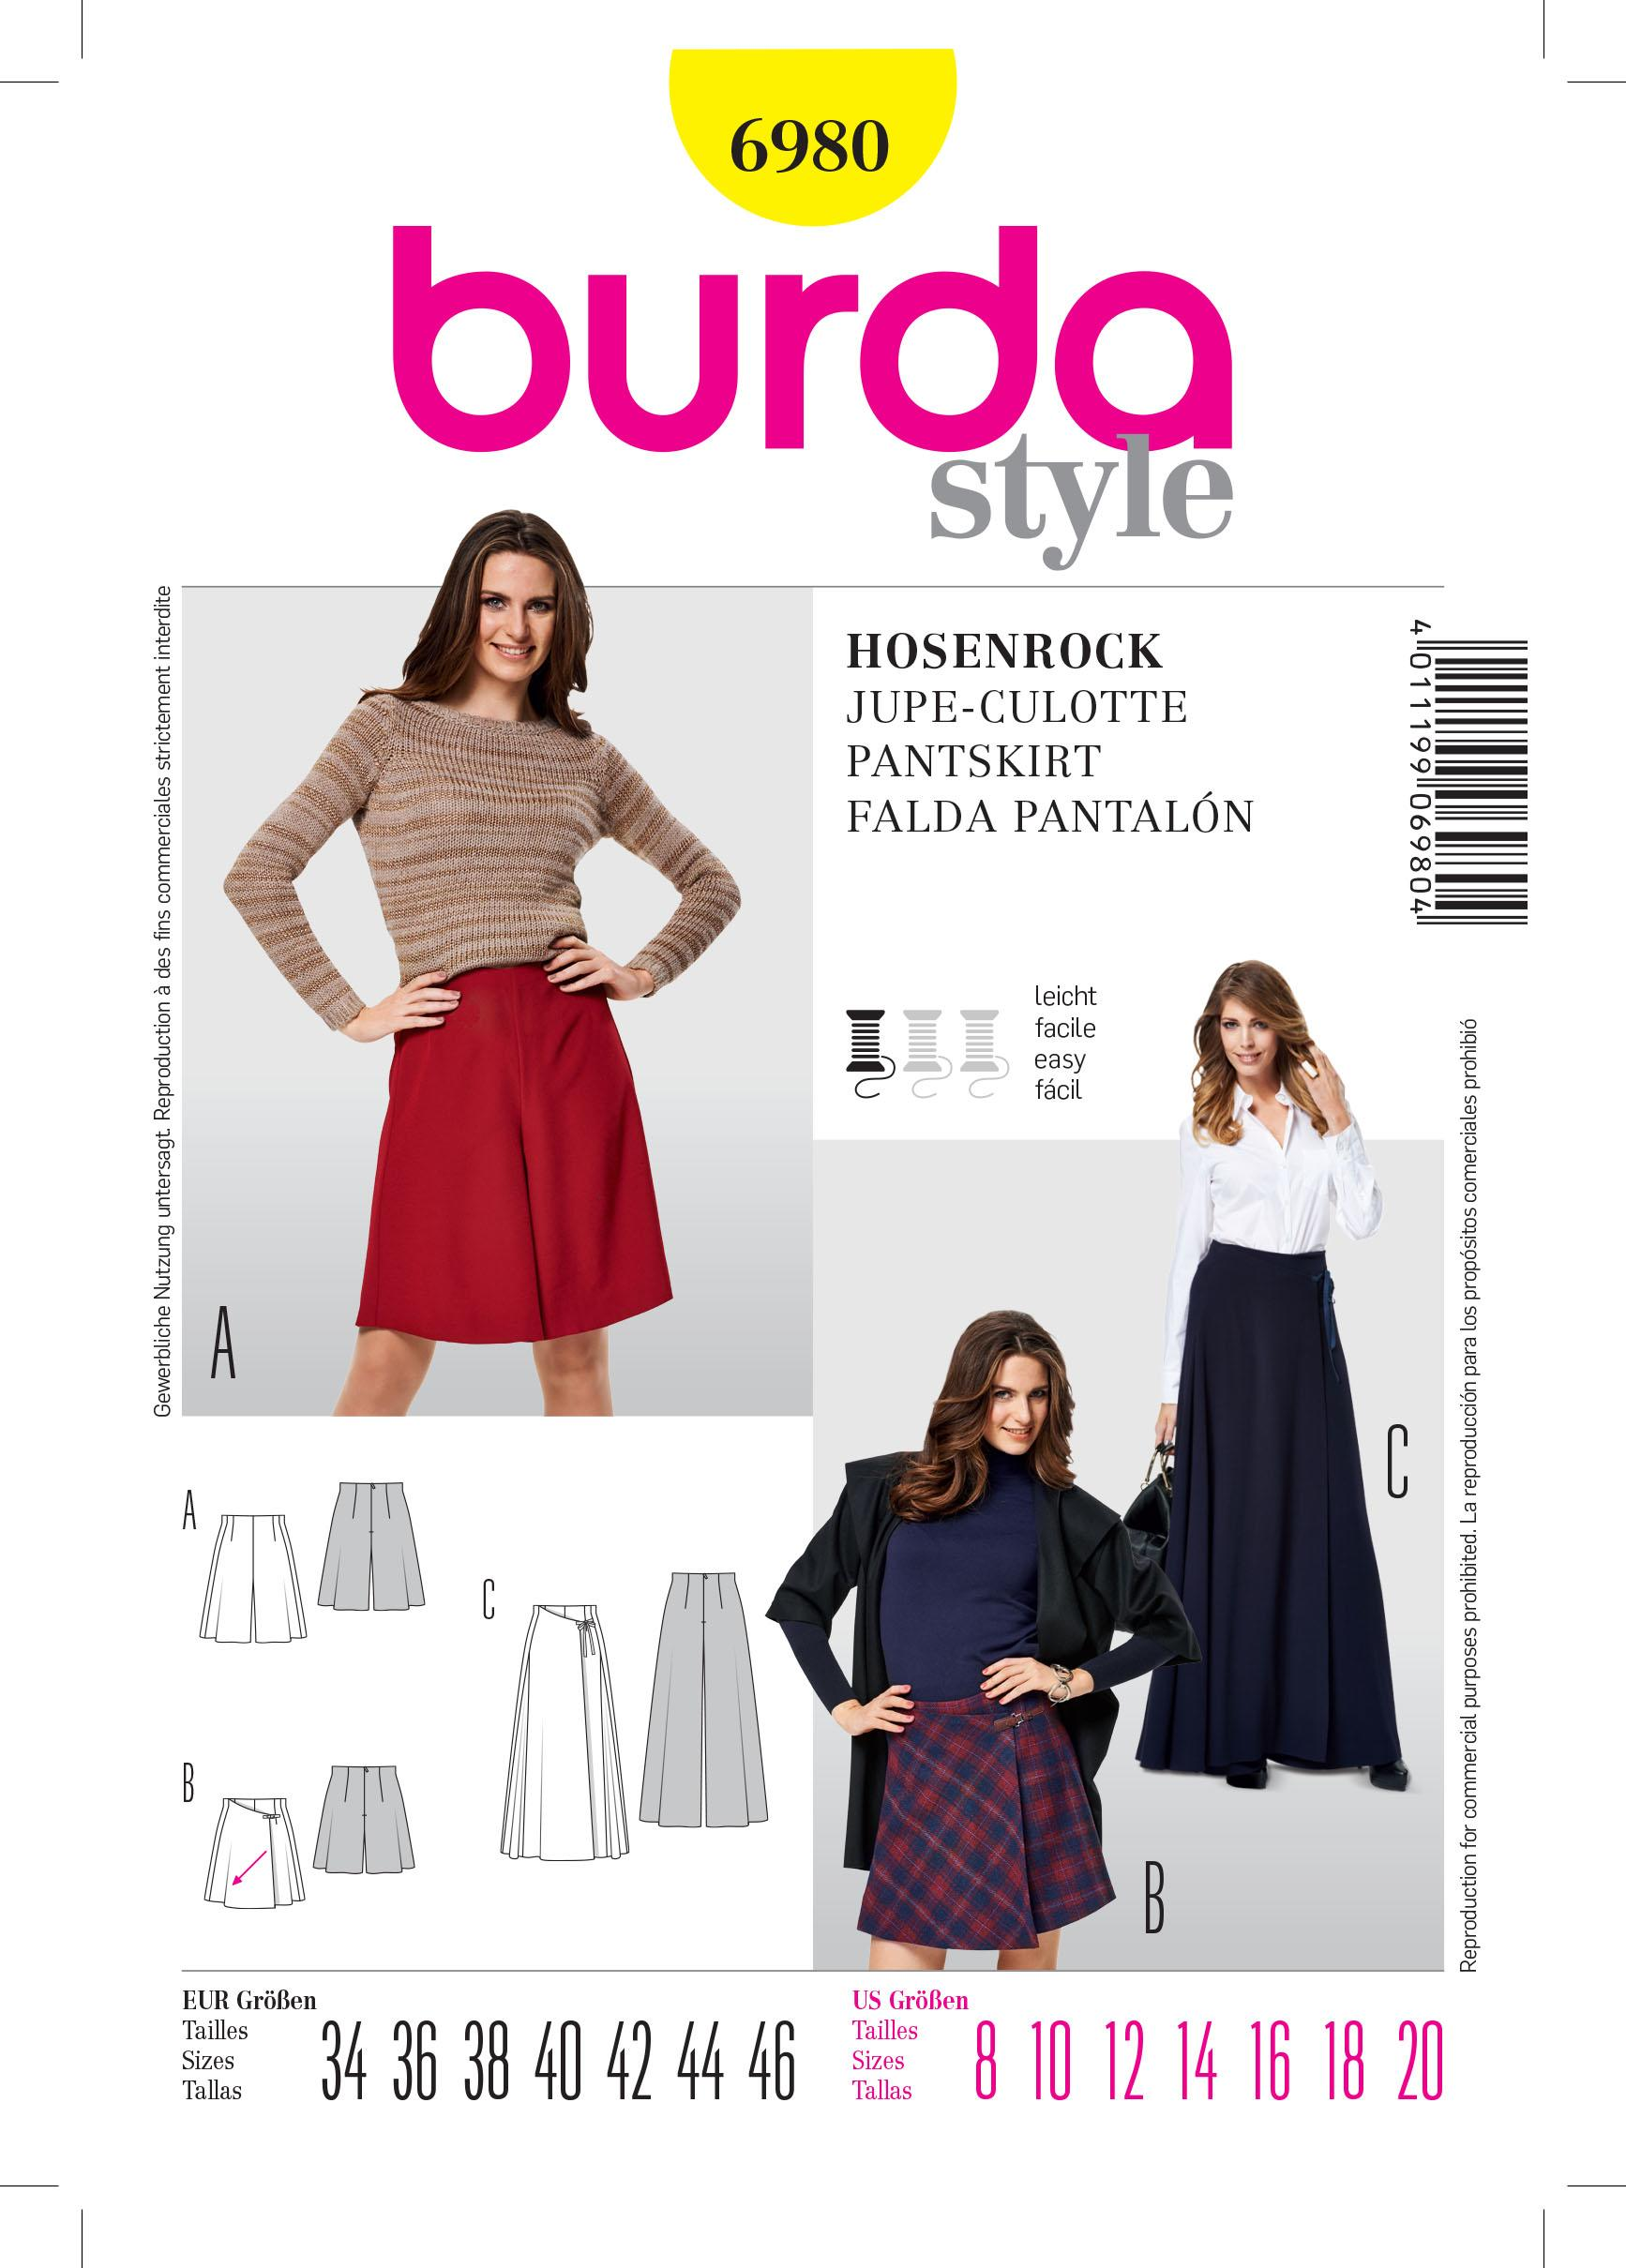 Burda B6980 Burda Trouserskirts Sewing Pattern